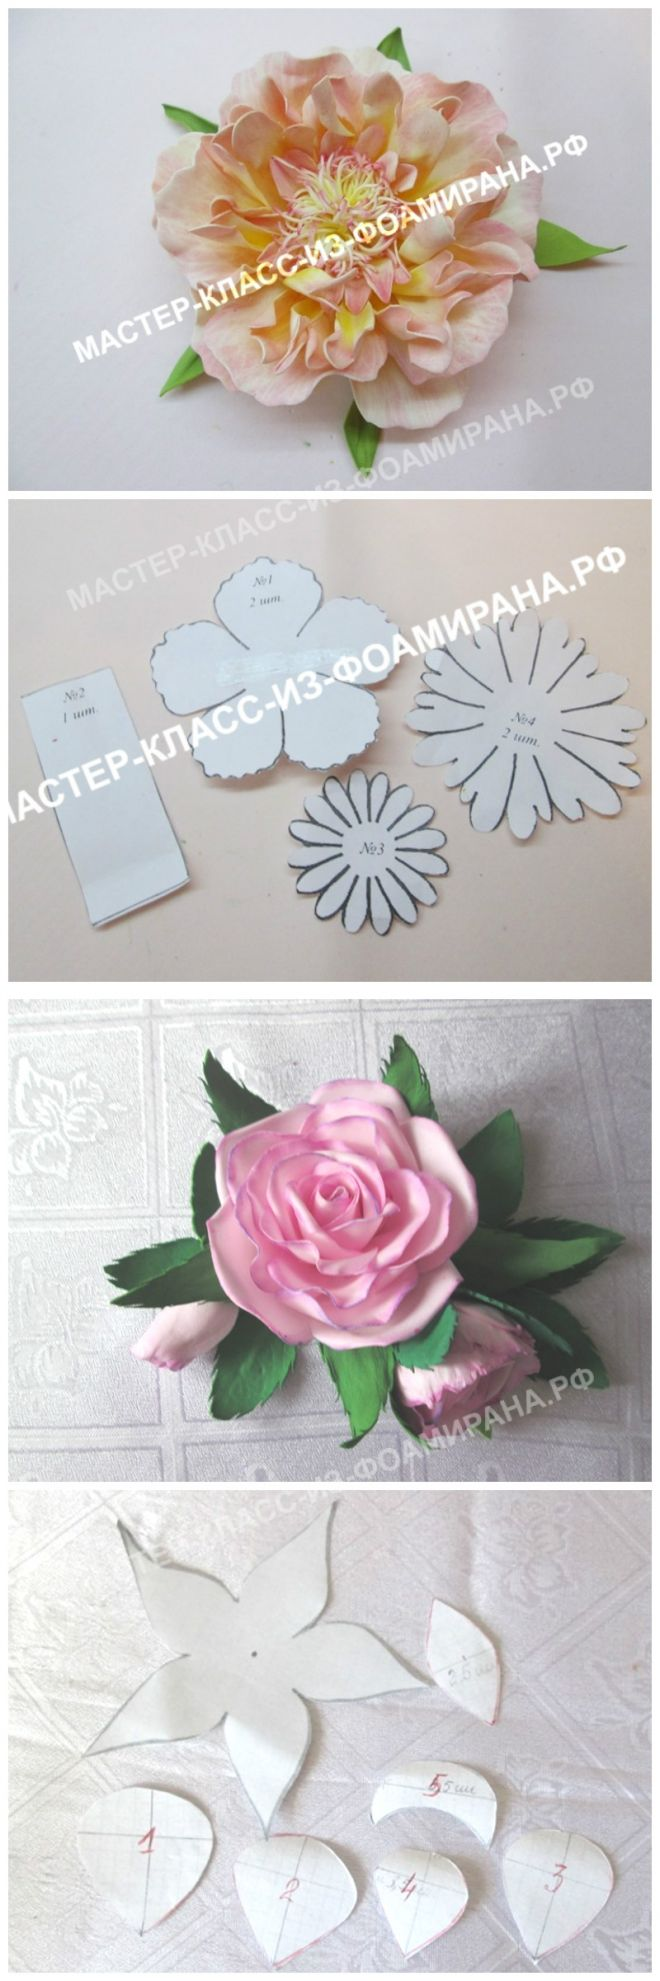 Rose pattern from a foamiran (templates of a flower and petals) | the Master class from a foamiran